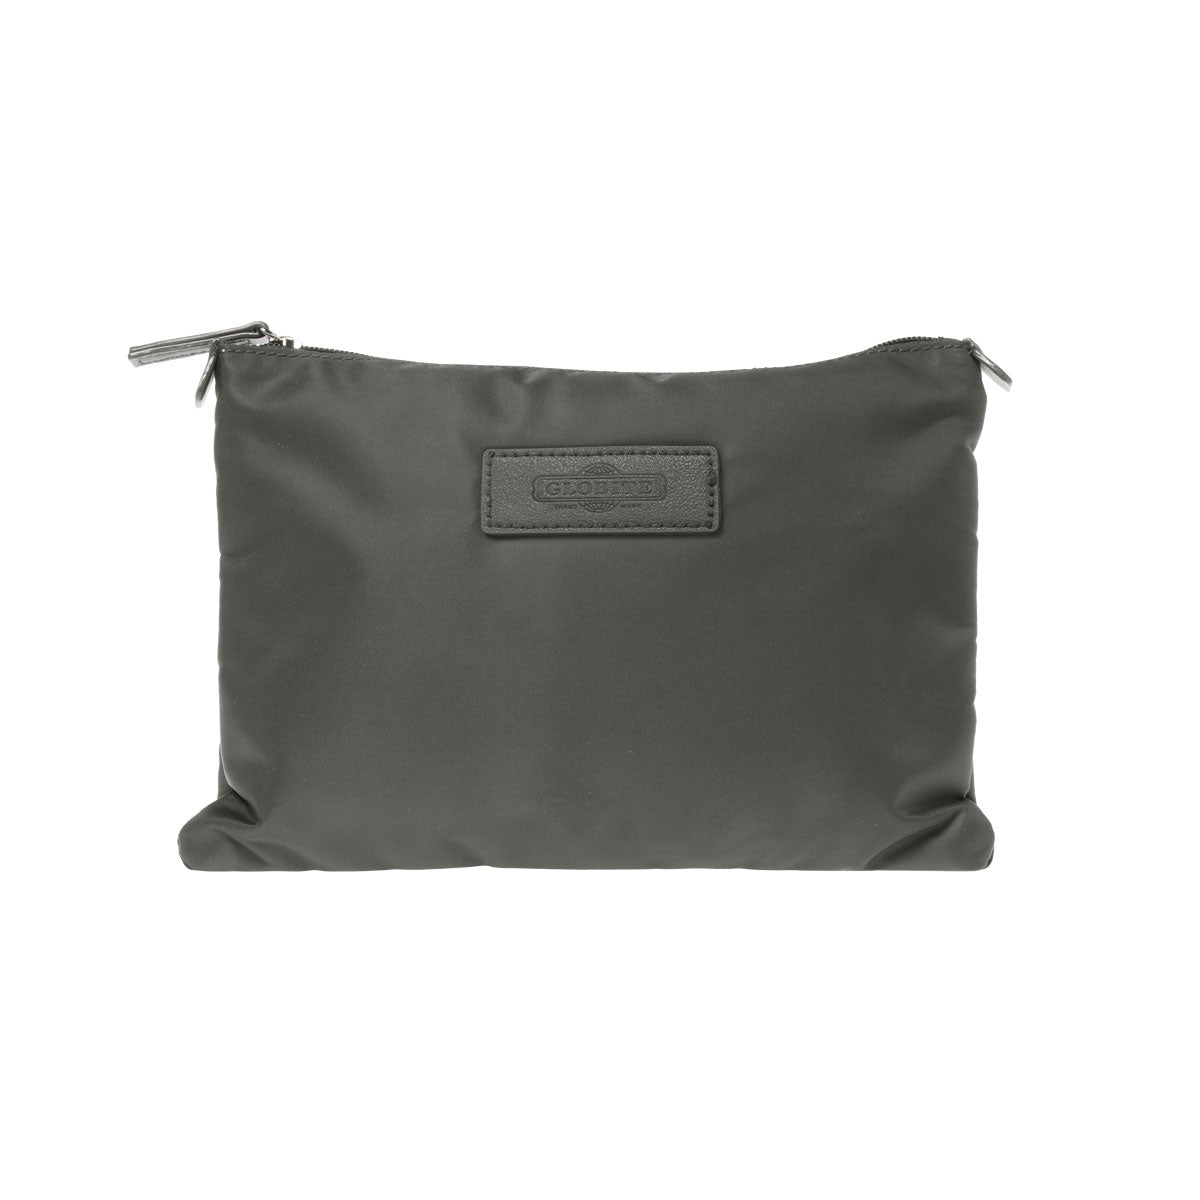 Stash & Dash Hold All Tote Bag - Grey - globite